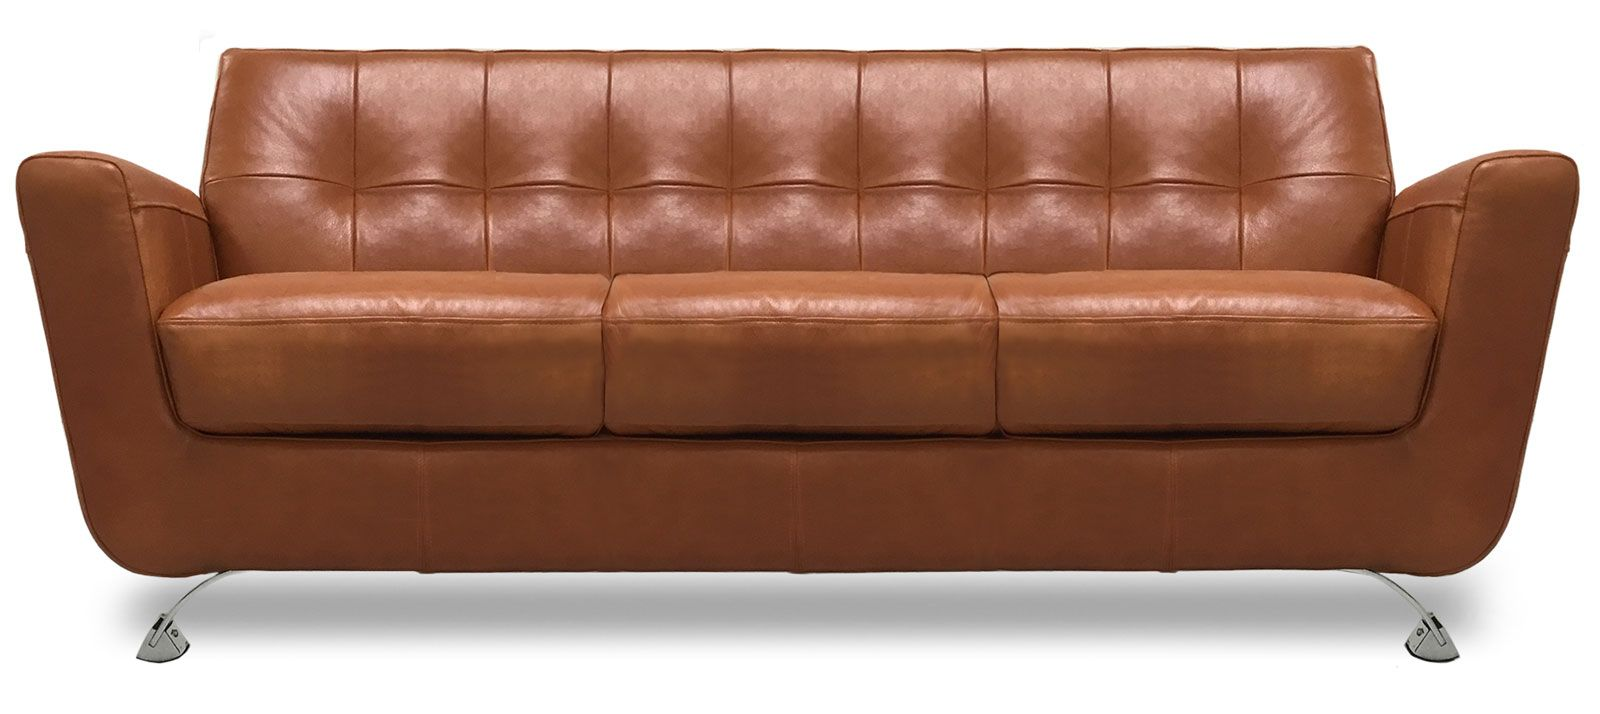 Leather sofas styles the leather sofa company for The sofa company